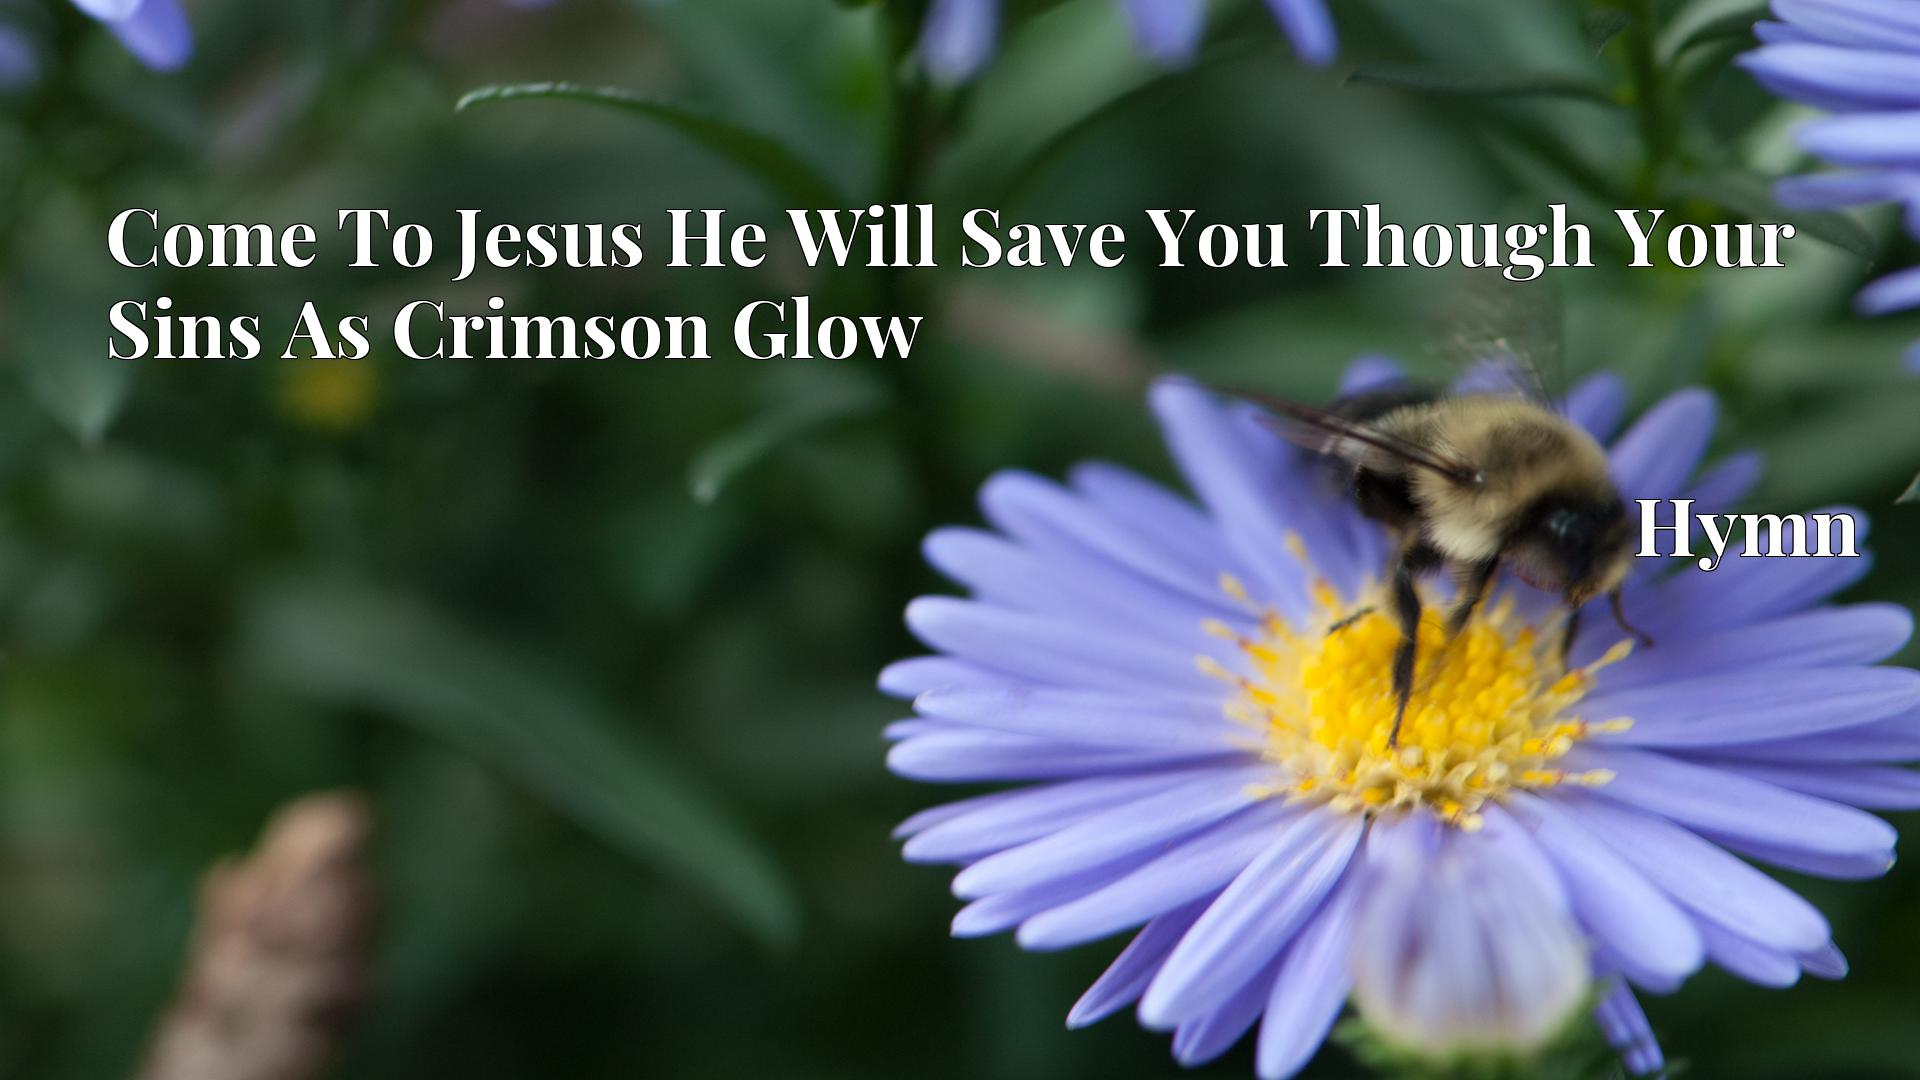 Come To Jesus He Will Save You Though Your Sins As Crimson Glow - Hymn